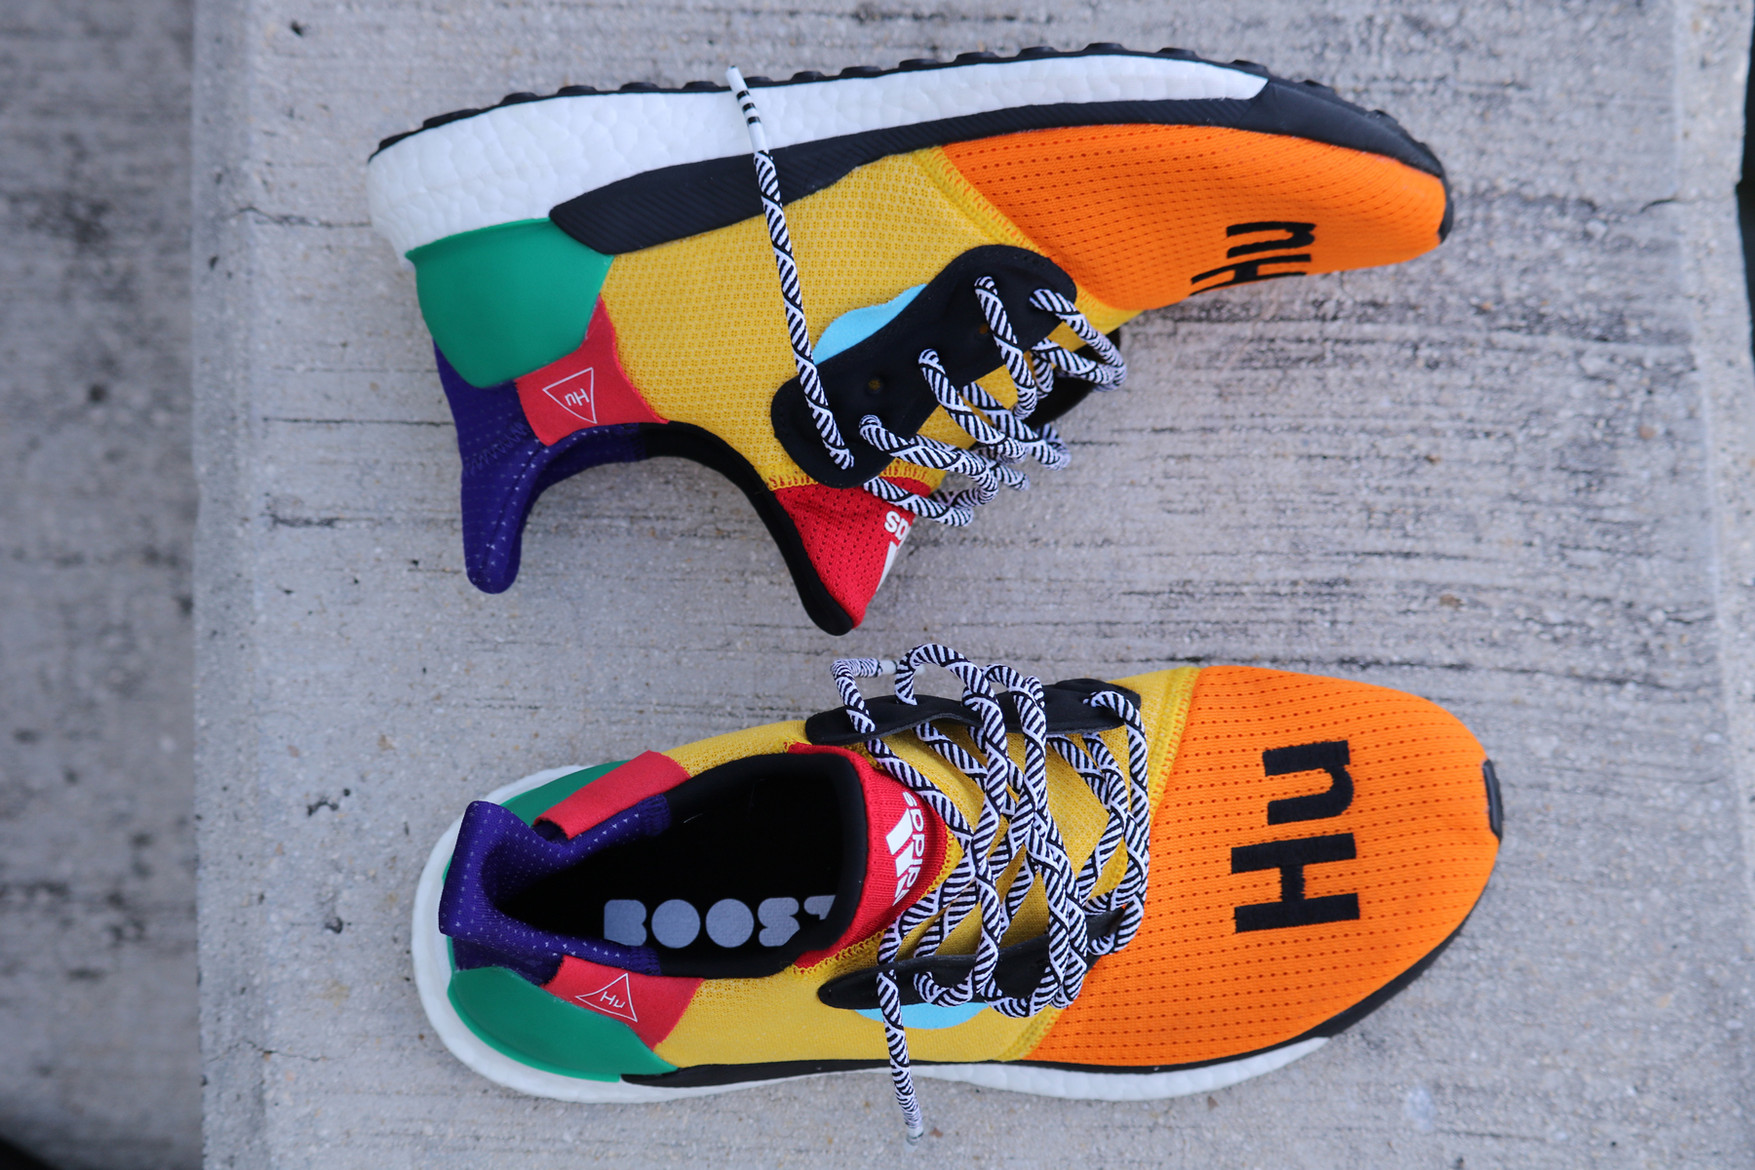 c169b5305 Skateboard P and adidas show no signs of slowing down their collaborative  efforts with the new PHARRELL x ADIDAS SOLAR HU GLIDE ST.